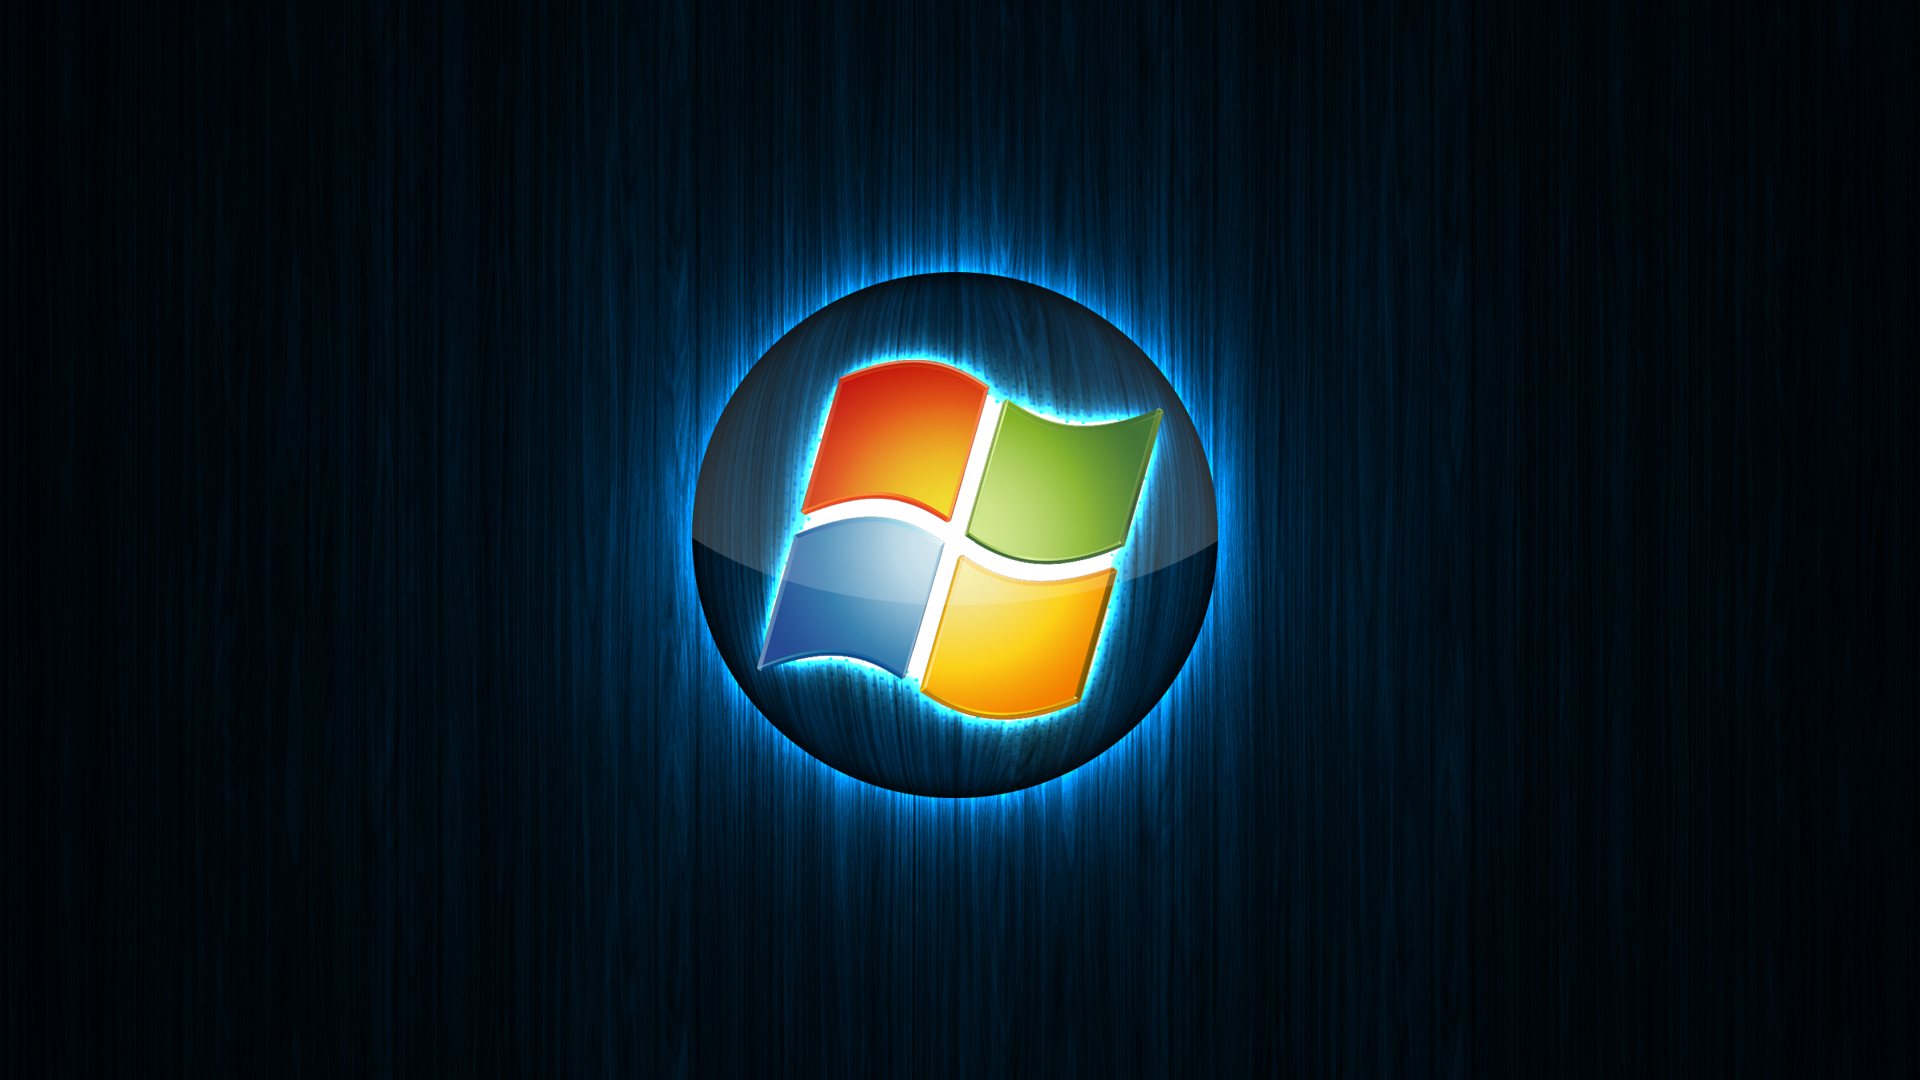 Windows wallpaper by orbonus on deviantart for Window background